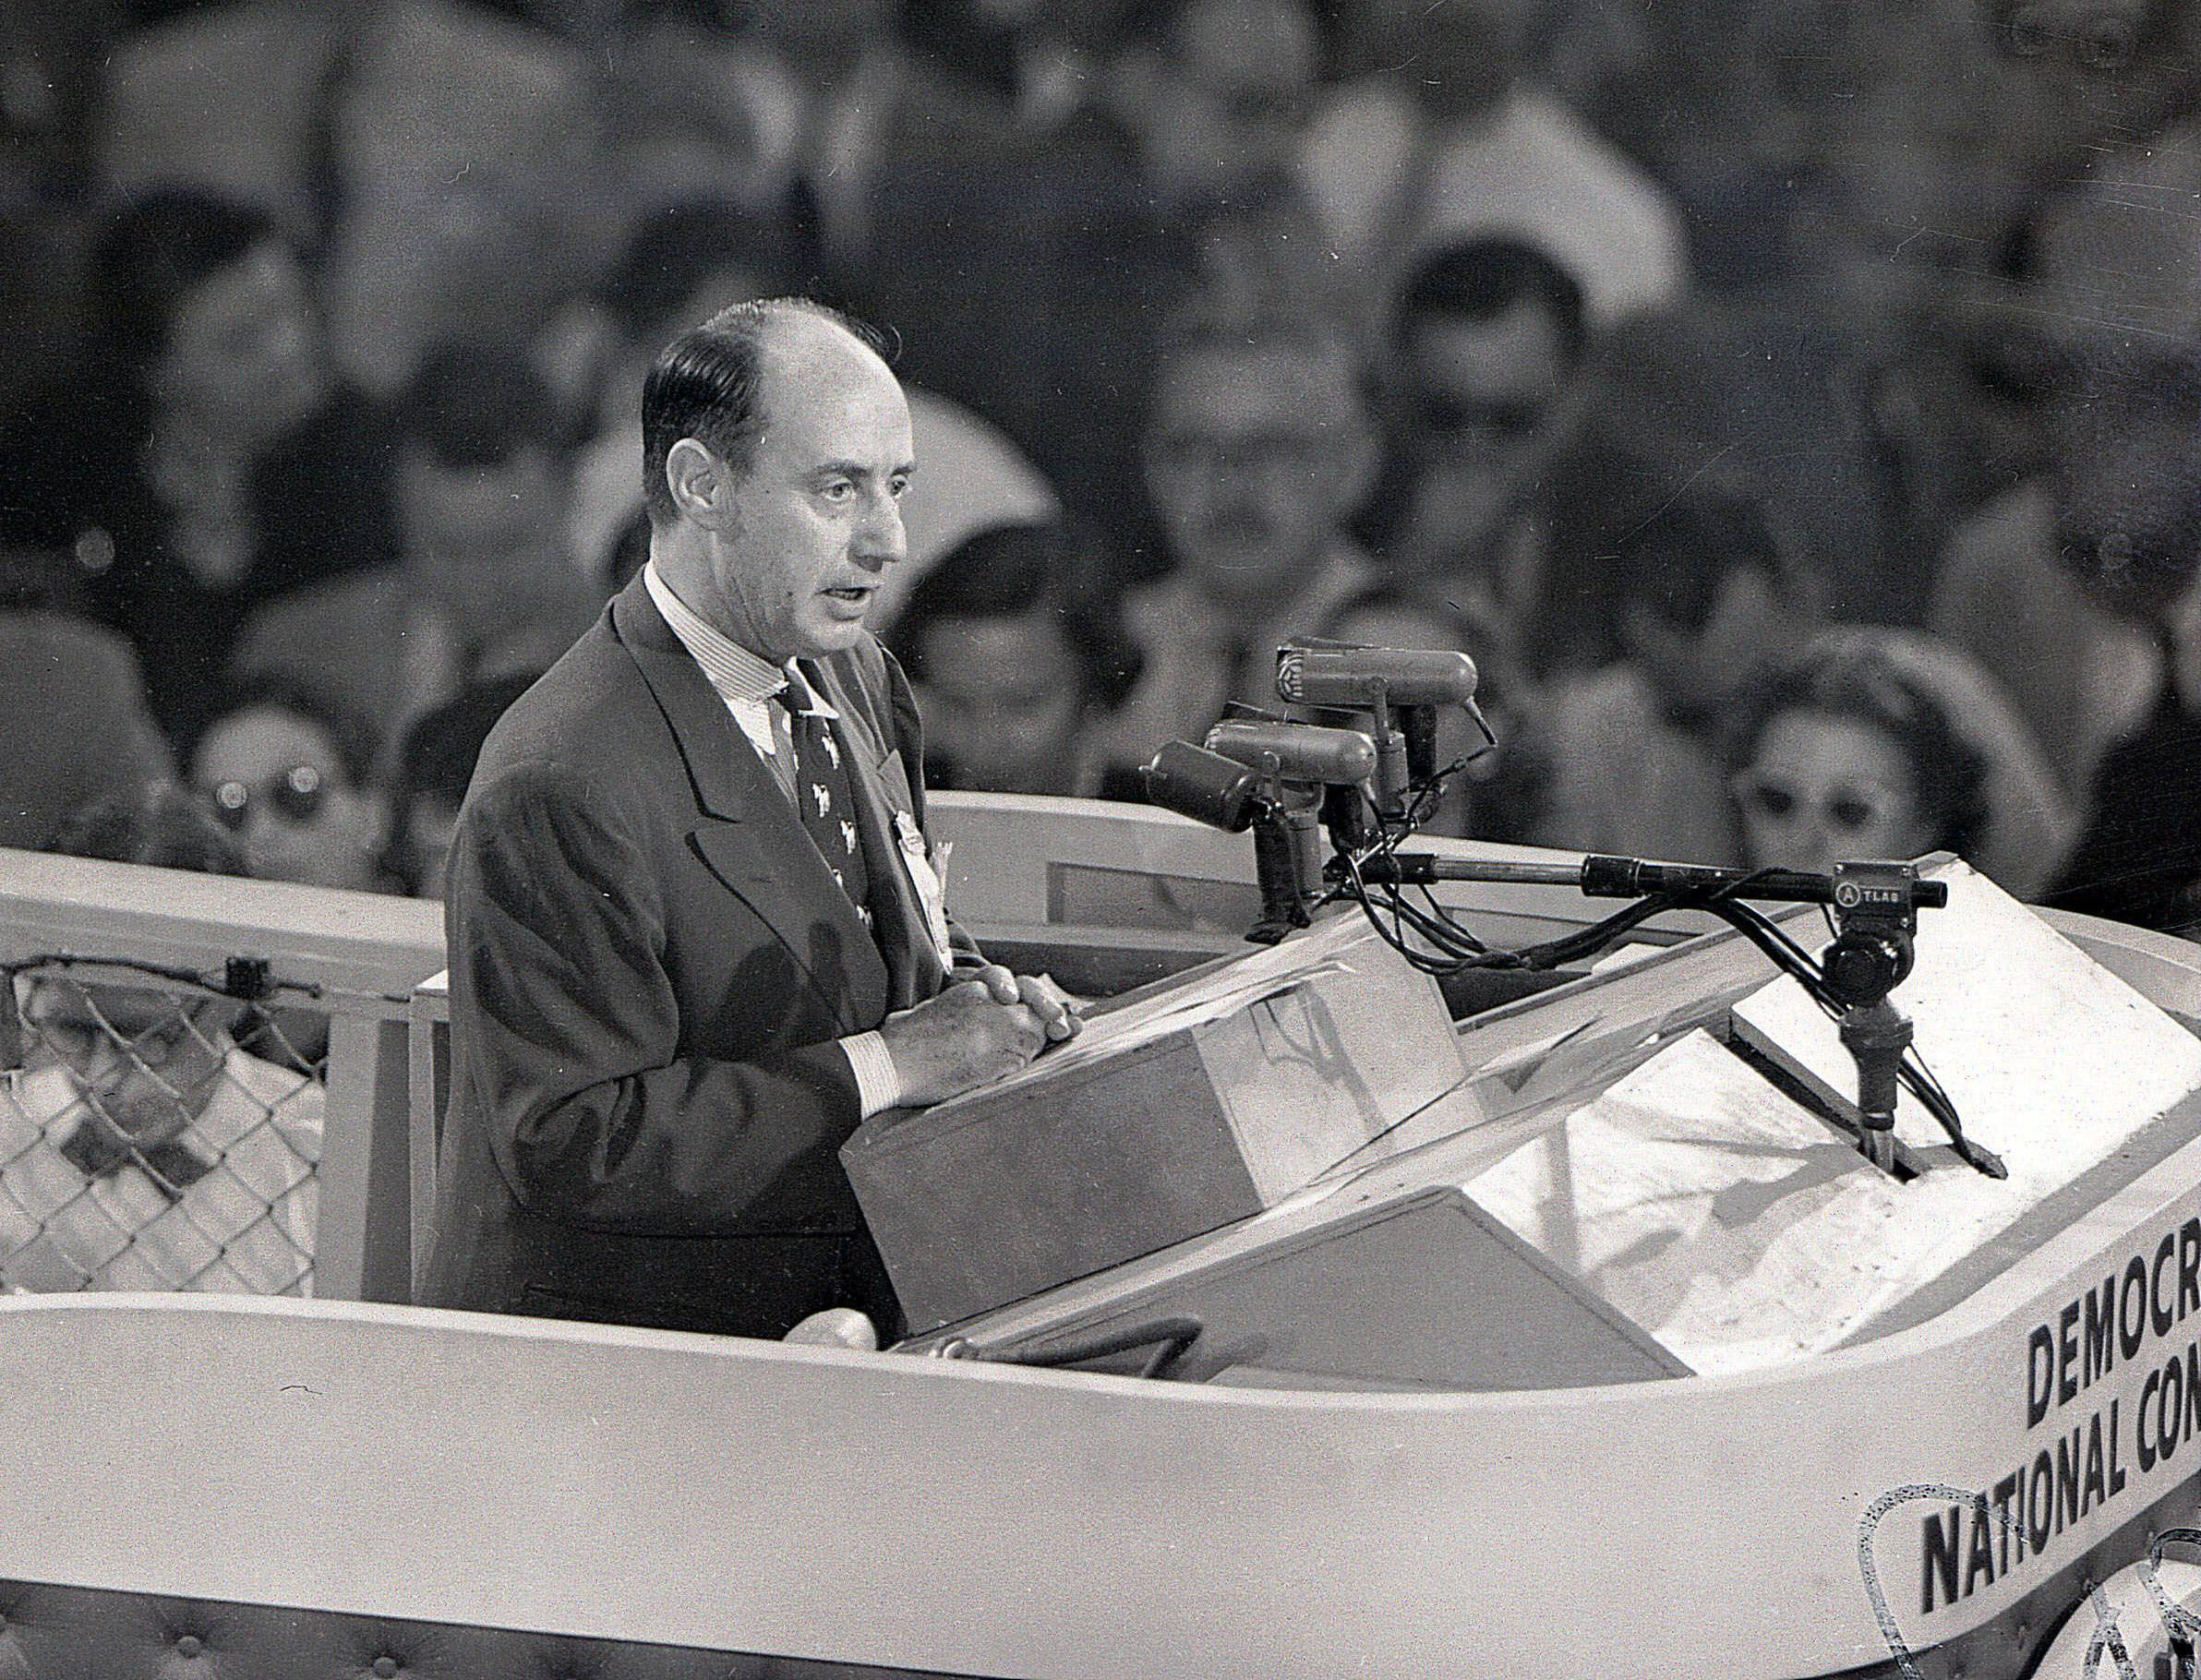 Contested convention? It worked for Adlai Stevenson in '52